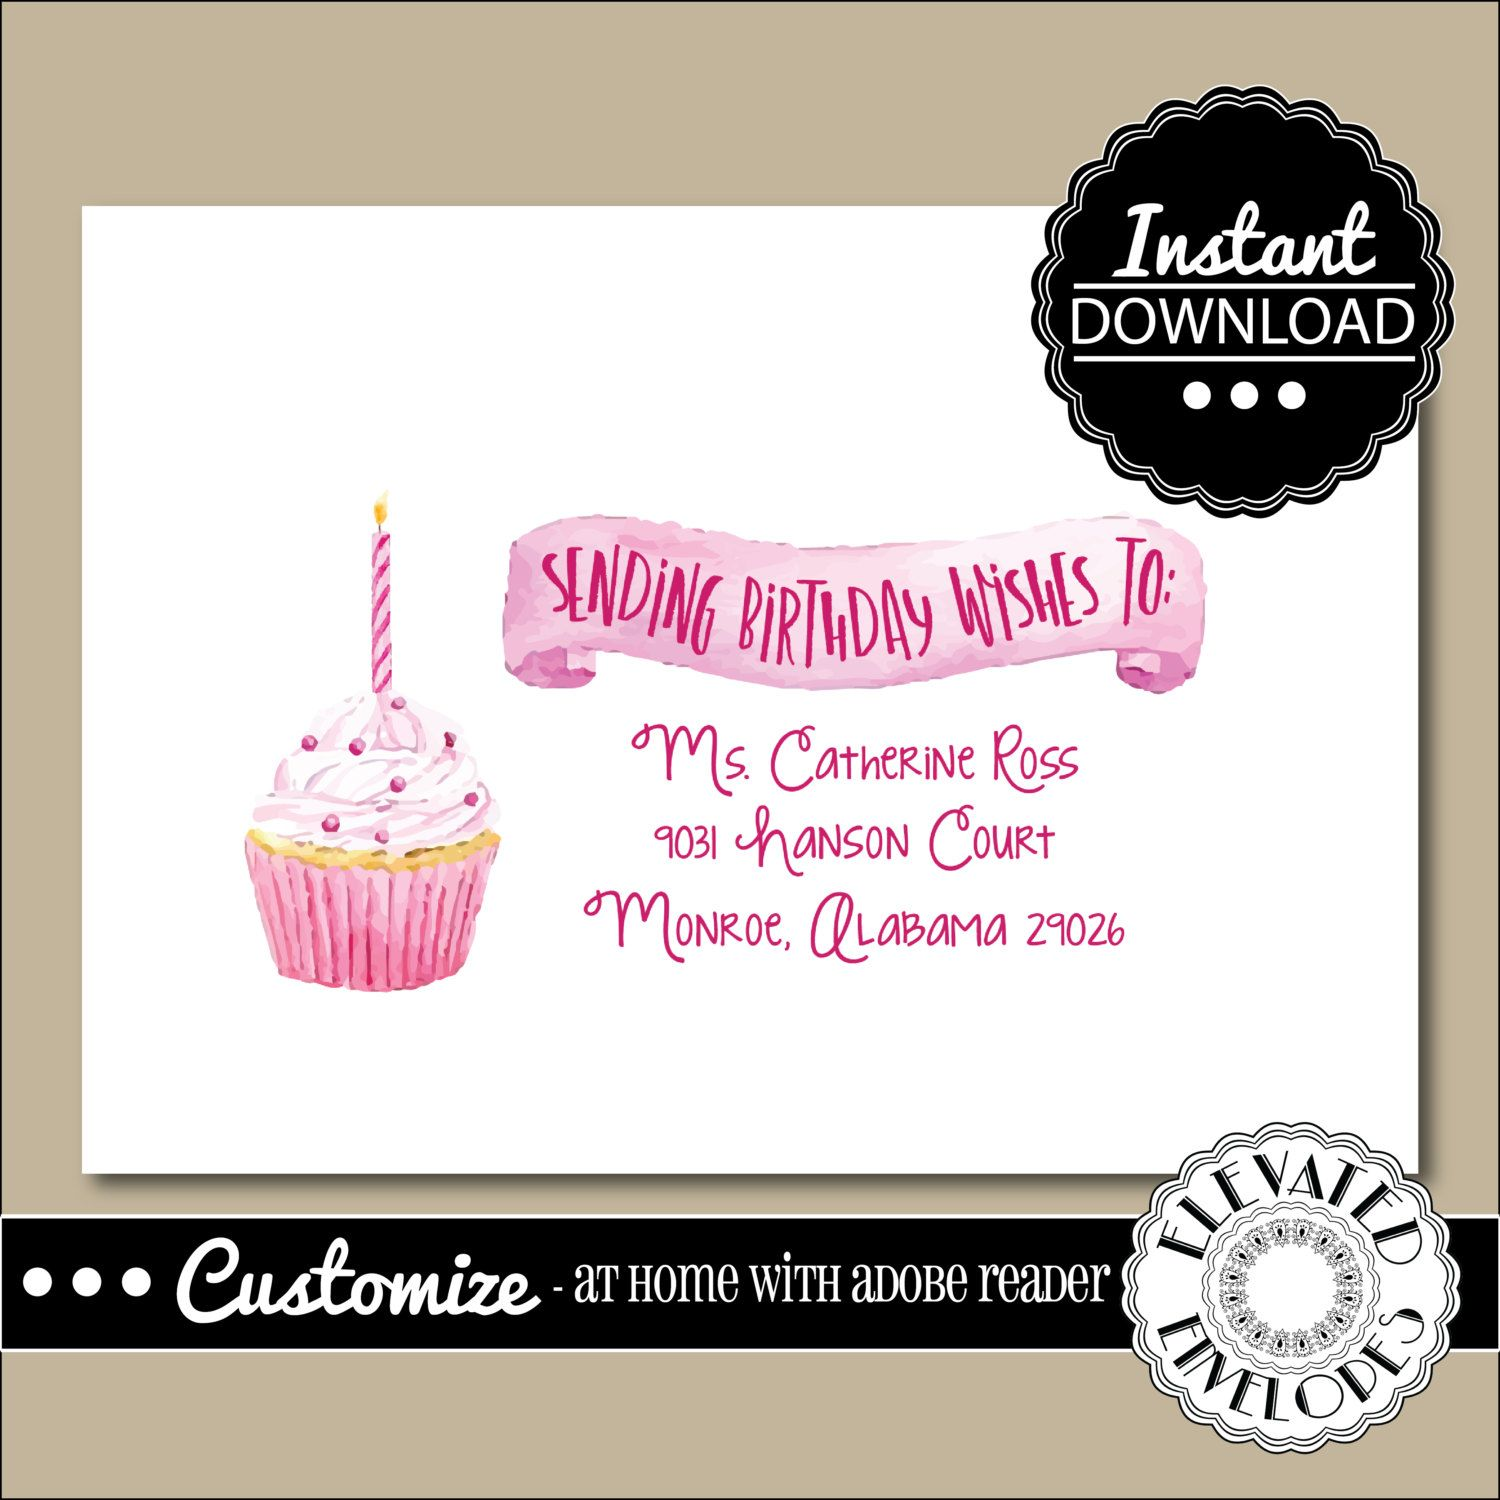 Editable birthday envelope templatebirthday envelope addressing editable birthday envelope templatebirthday envelope addressingbirthdaycupcakerecipient addressingenvelope addressinginstant download altavistaventures Choice Image